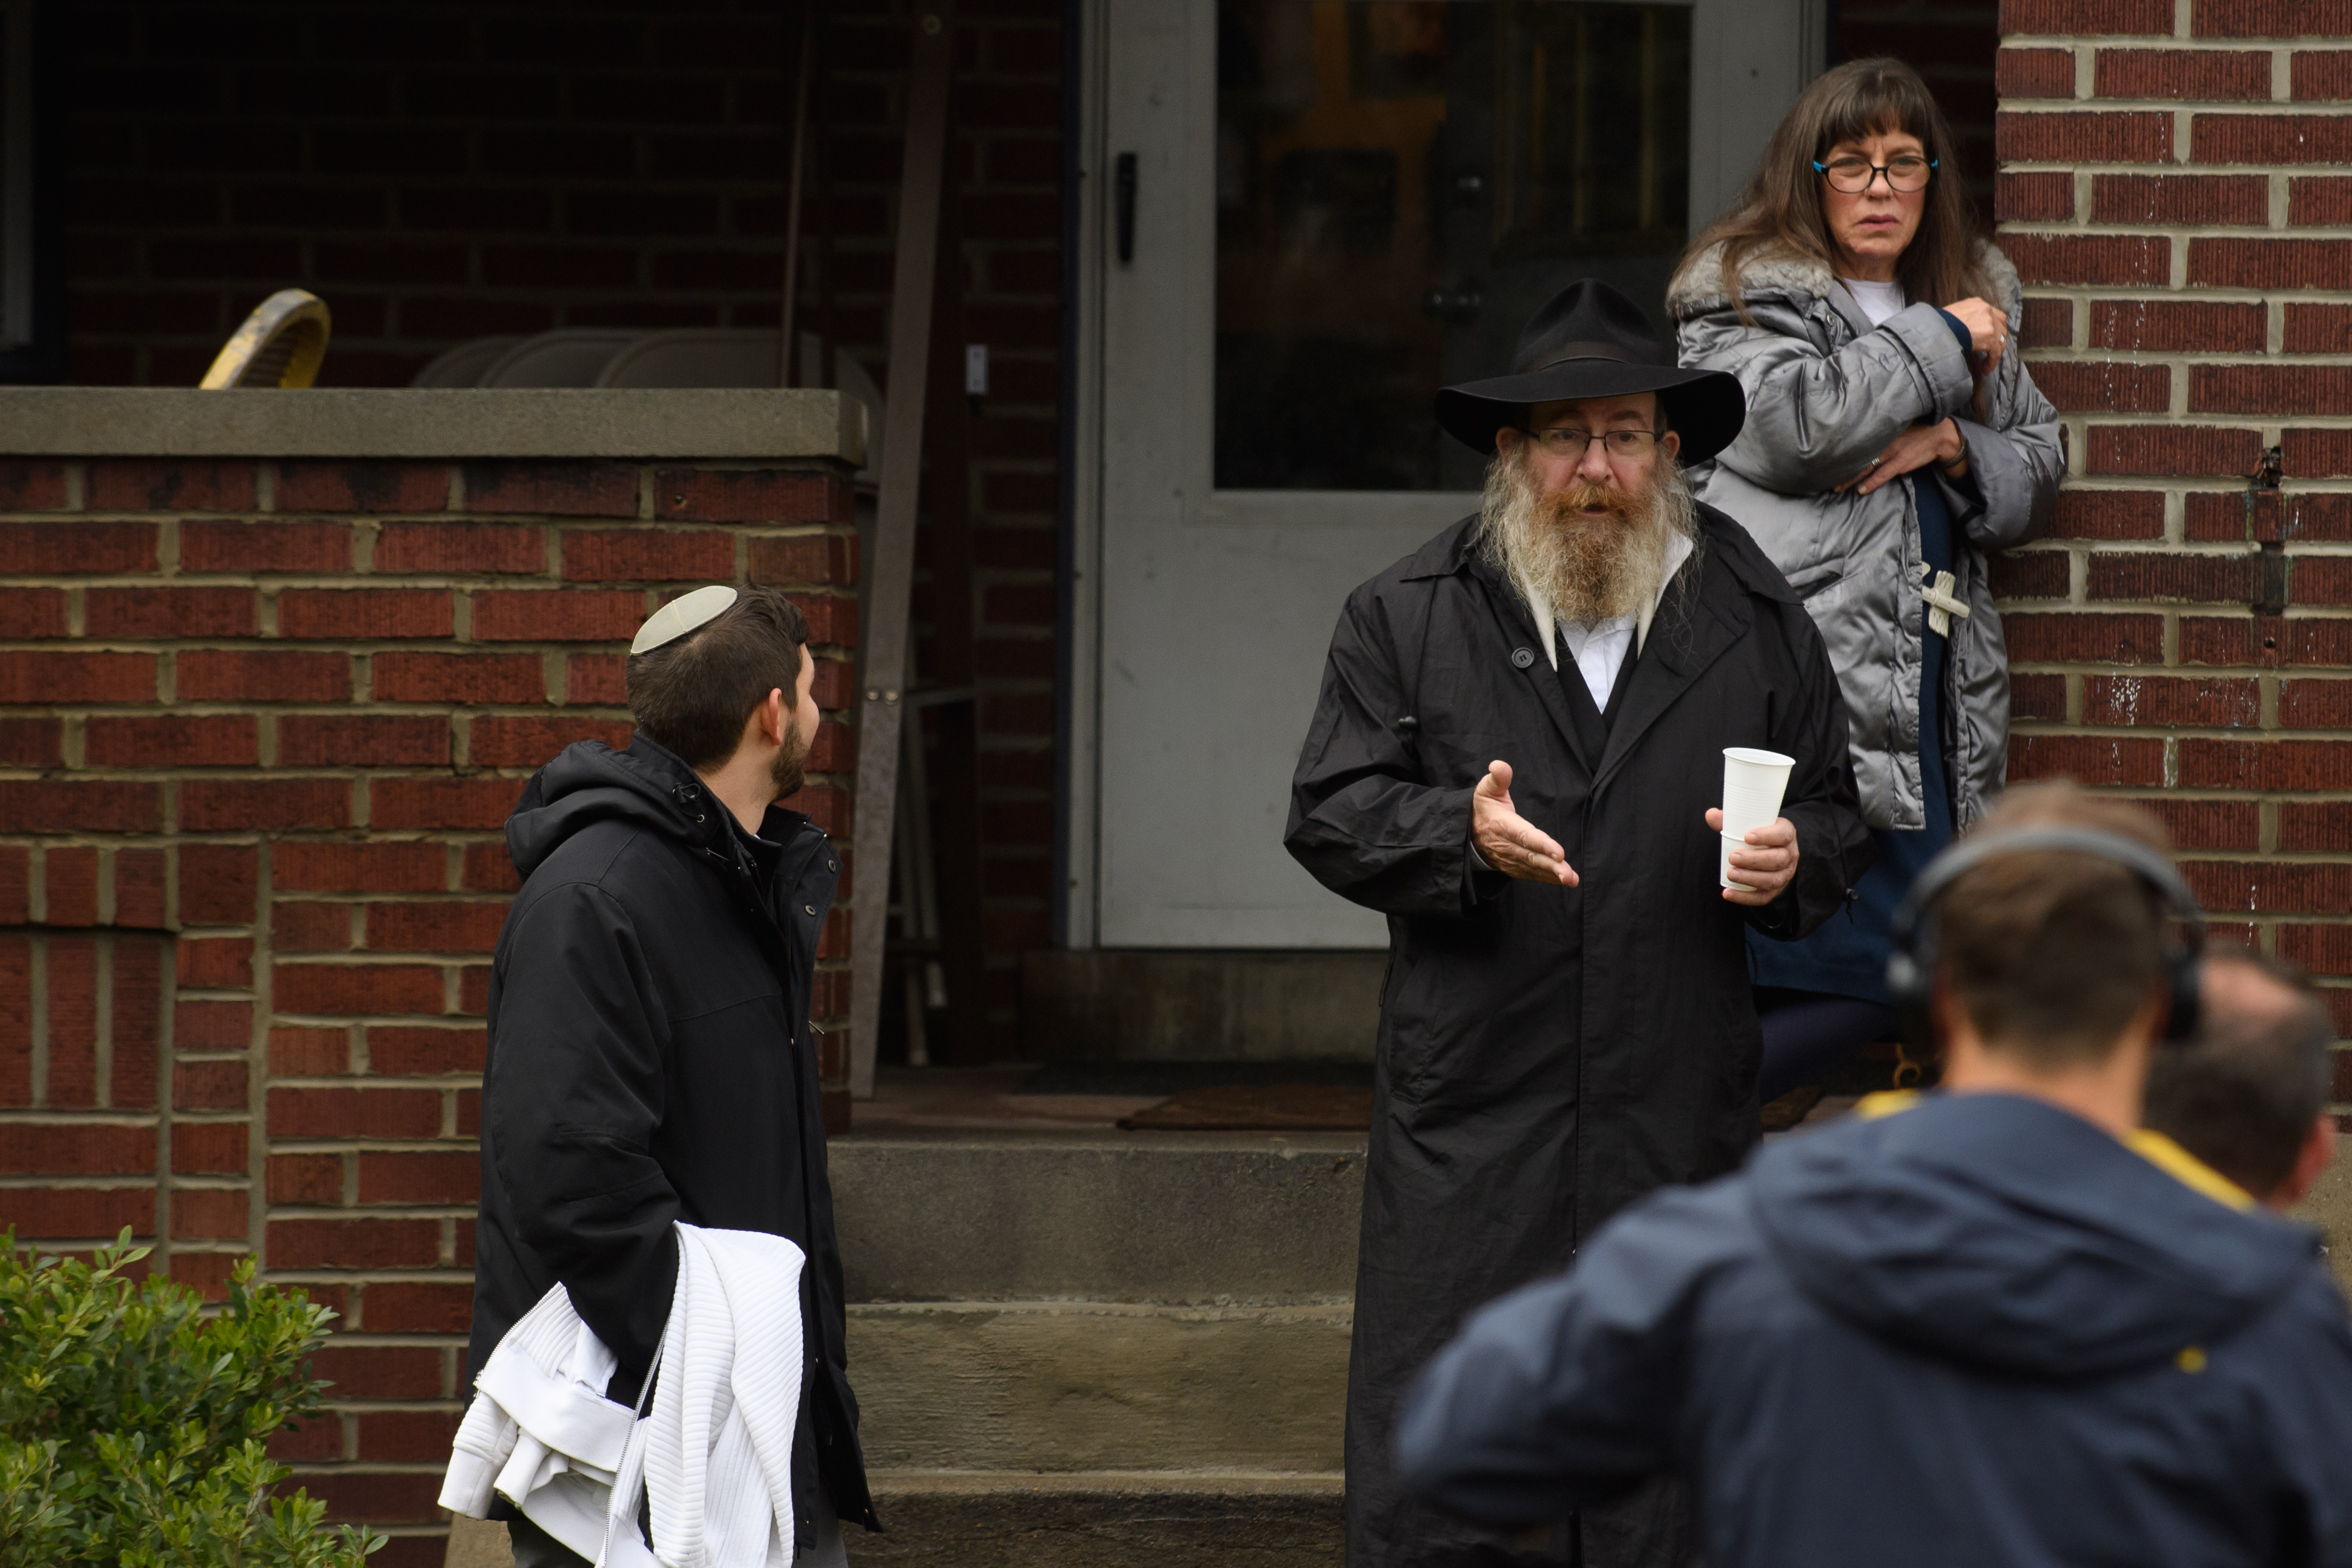 Residents talk to the media near the site of a mass shooting at the Tree of Life Synagogue in the Squirrel Hill neighborhood on October 27, 2018 in Pittsburgh, Pennsylvania. (Getty Images)